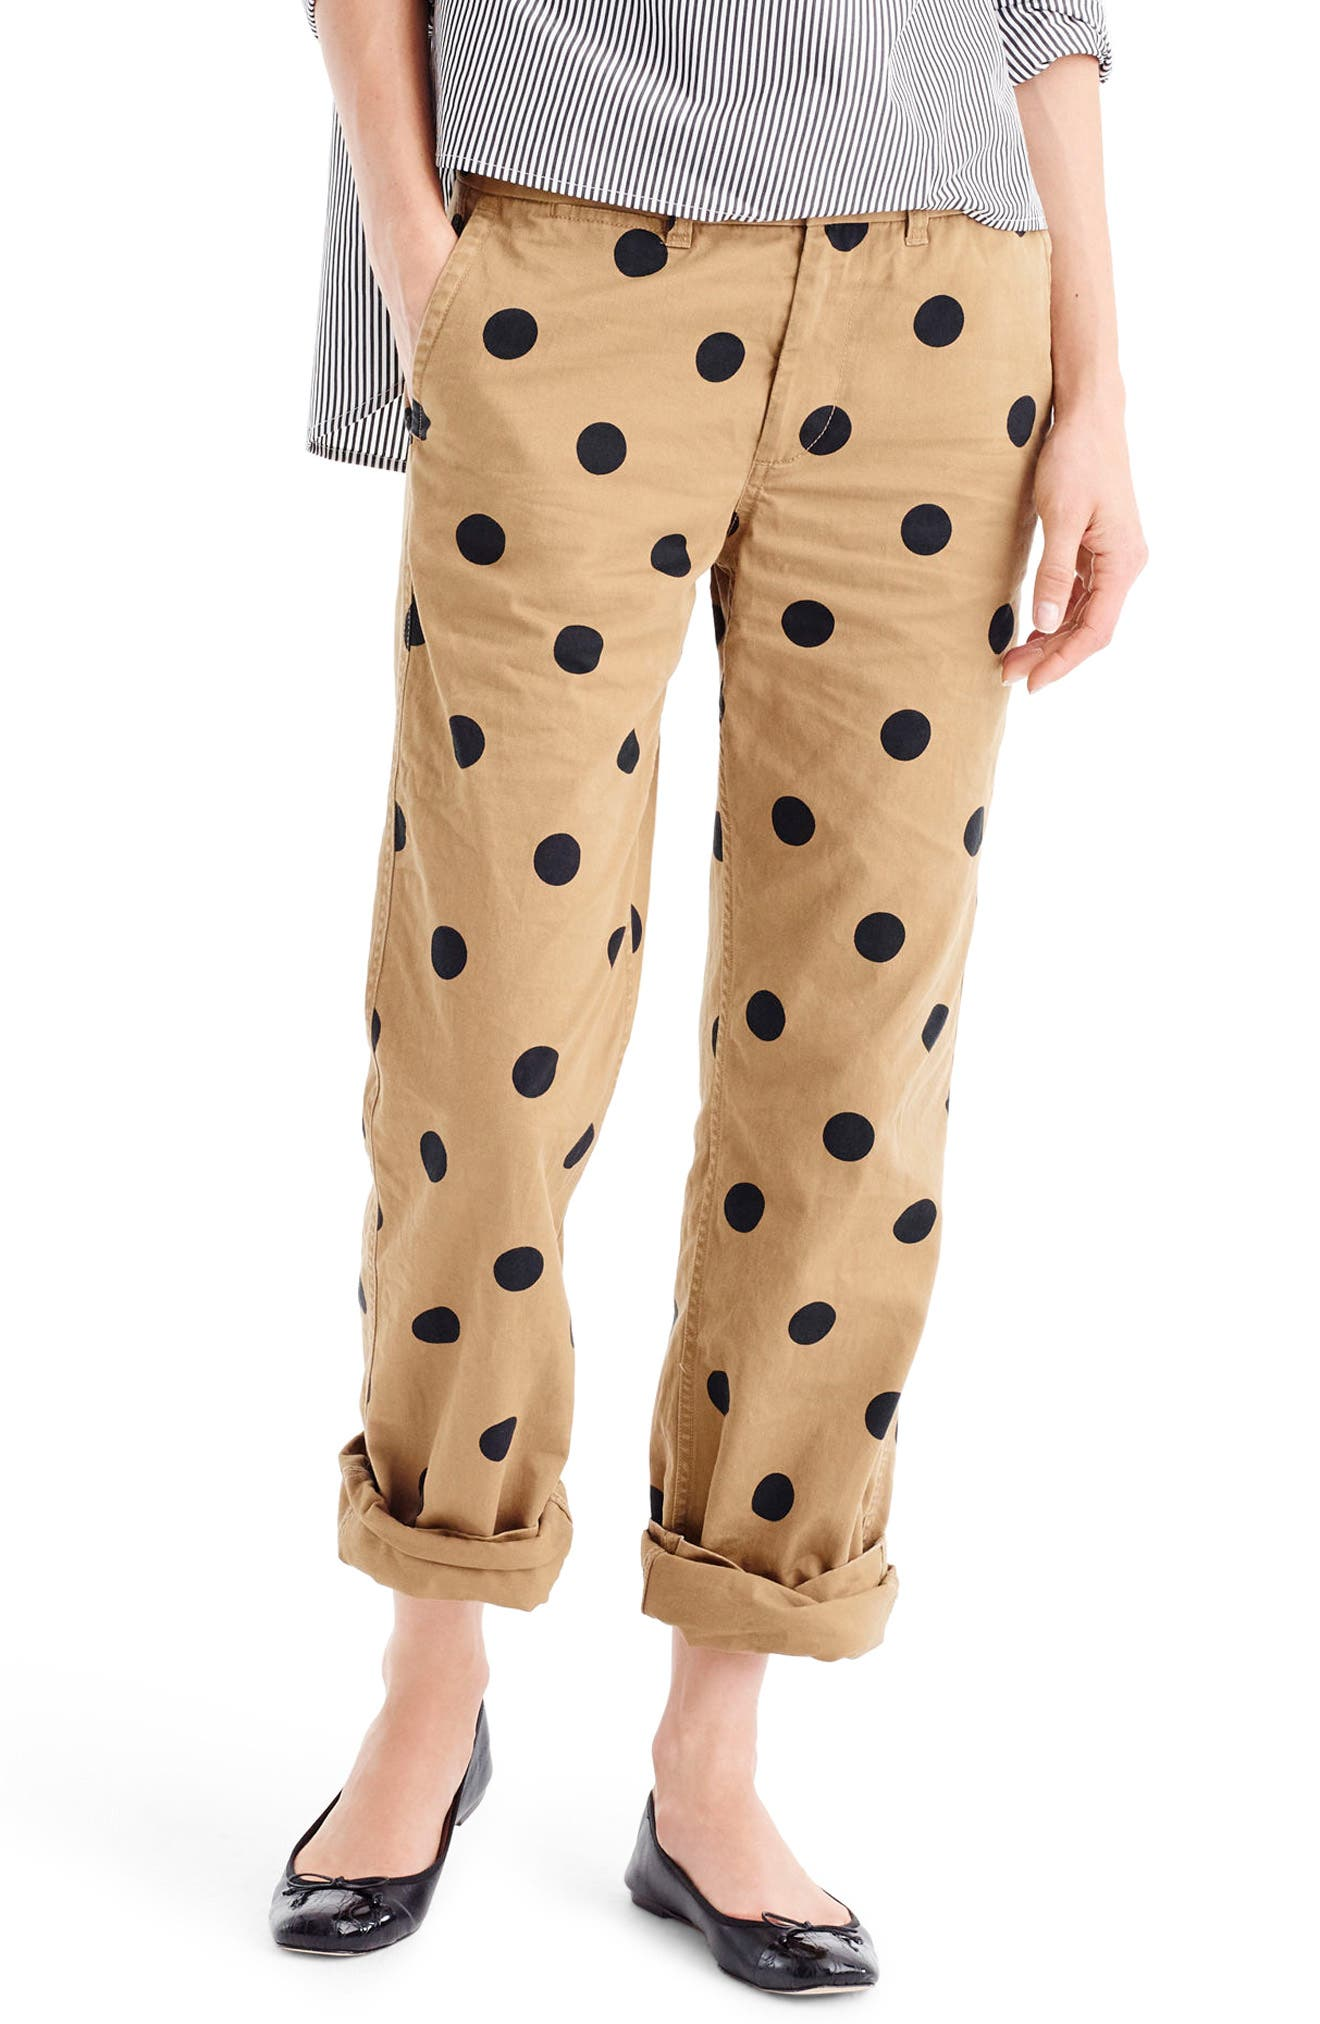 J.Crew Polka Dot Boyfriend Chino Pants (Regular & Petite)